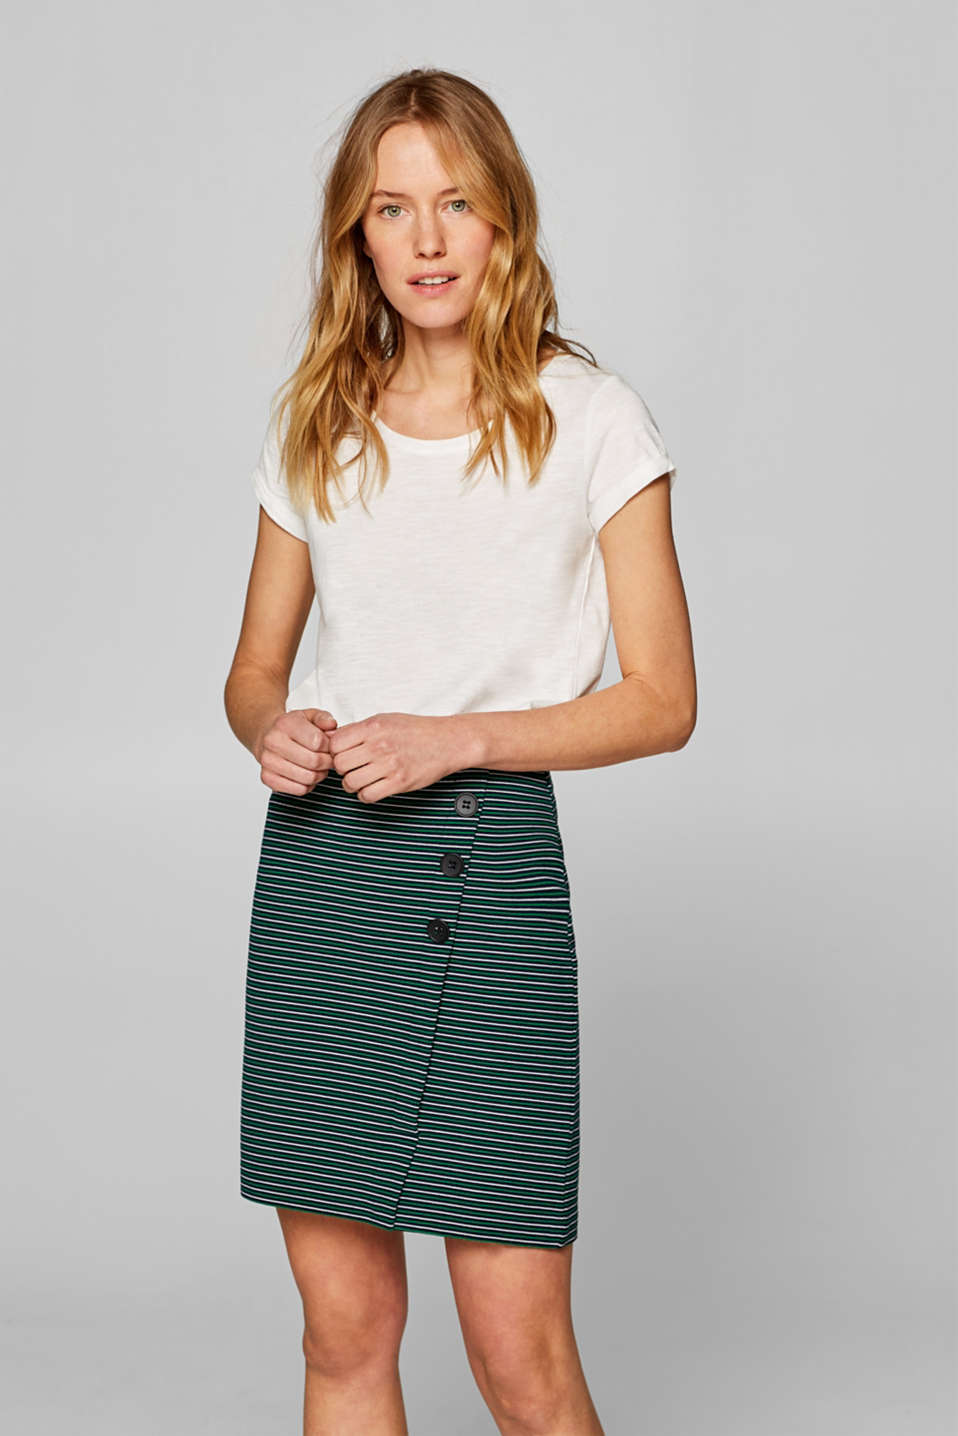 Esprit - Stretch jersey skirt with a button placket